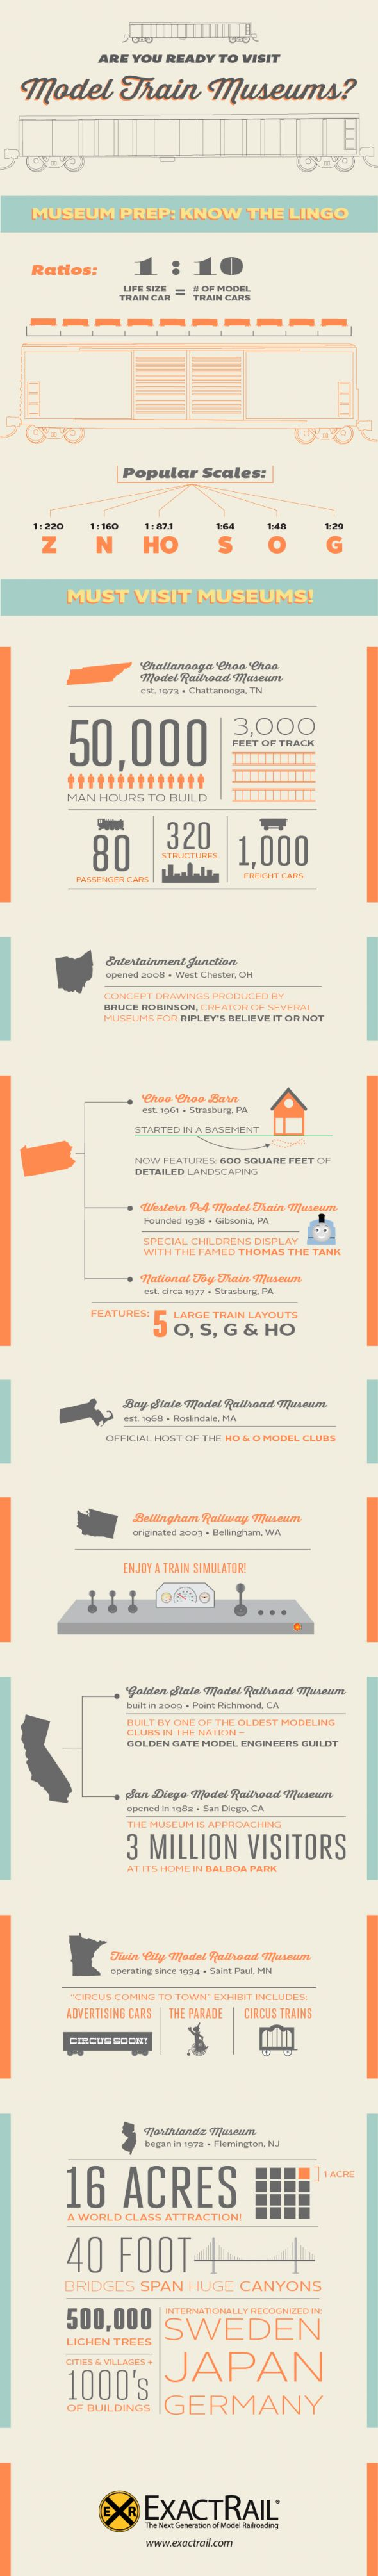 #Infographic: Are You Ready to Visit Model Train Museums?